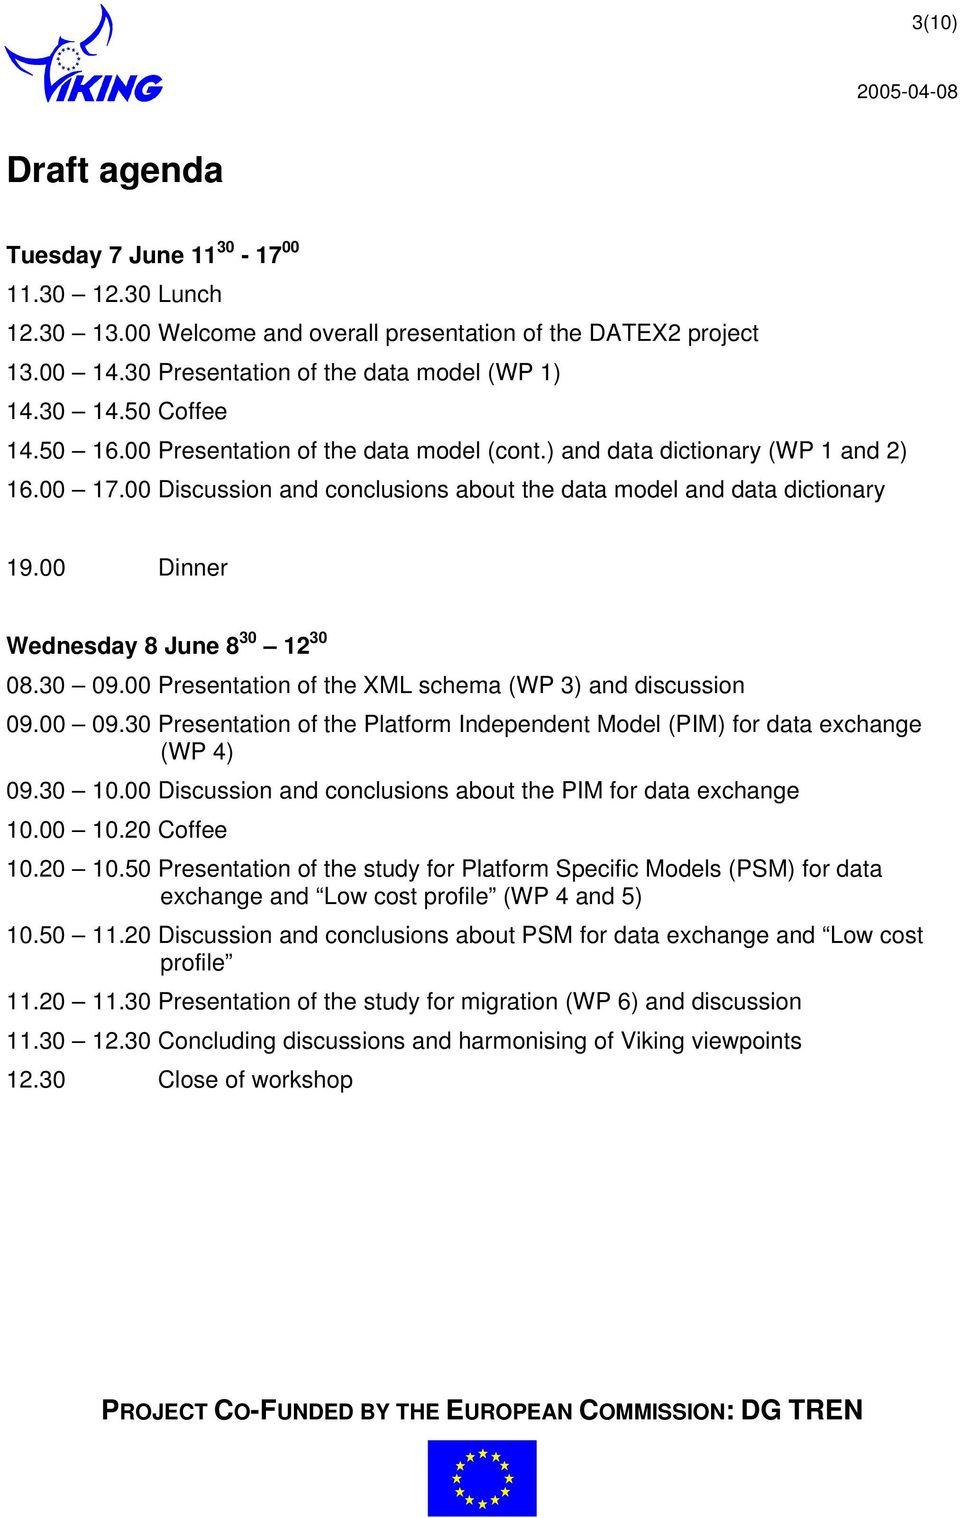 00 Dinner Wednesday 8 June 8 30 12 30 08.30 09.00 Presentation of the XML schema (WP 3) and discussion 09.00 09.30 Presentation of the Platform Independent Model (PIM) for data exchange (WP 4) 09.